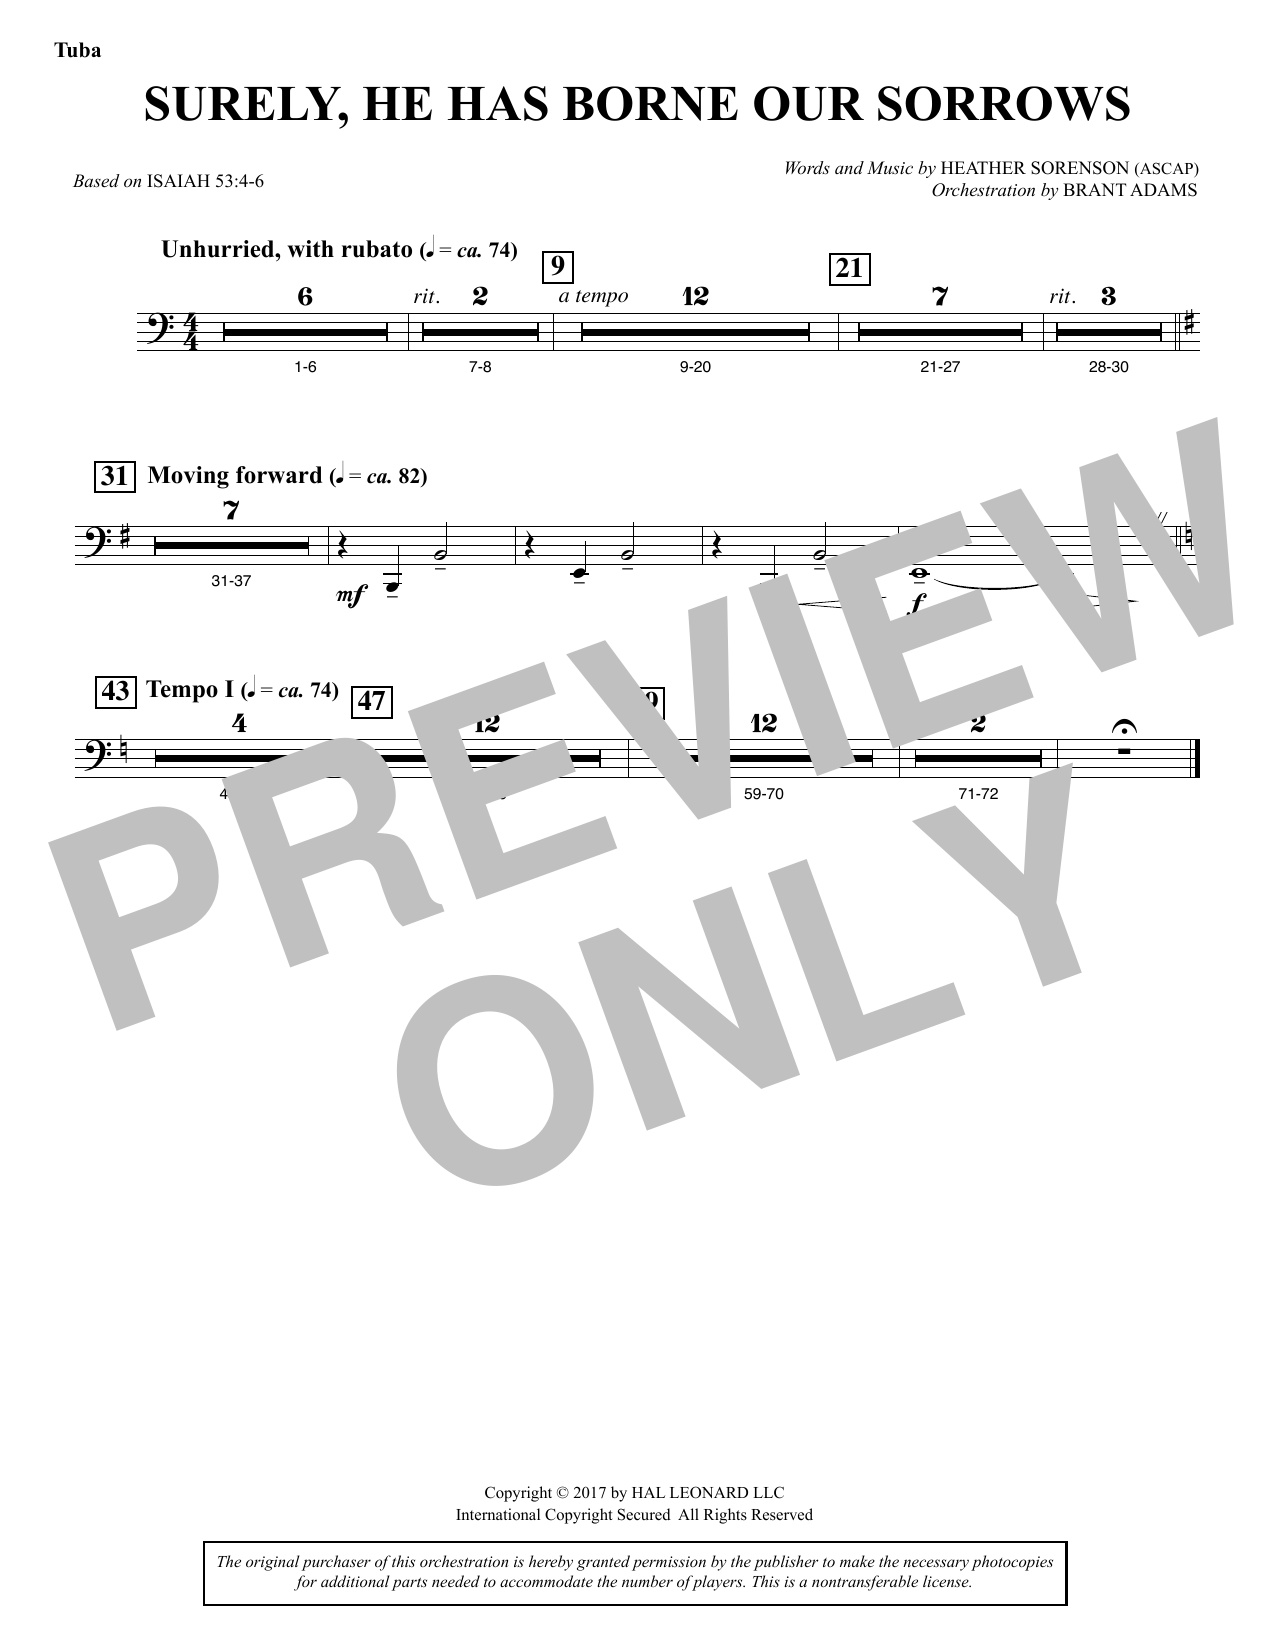 Heather Sorenson Surely, He Has Borne Our Sorrows - Tuba sheet music notes and chords. Download Printable PDF.